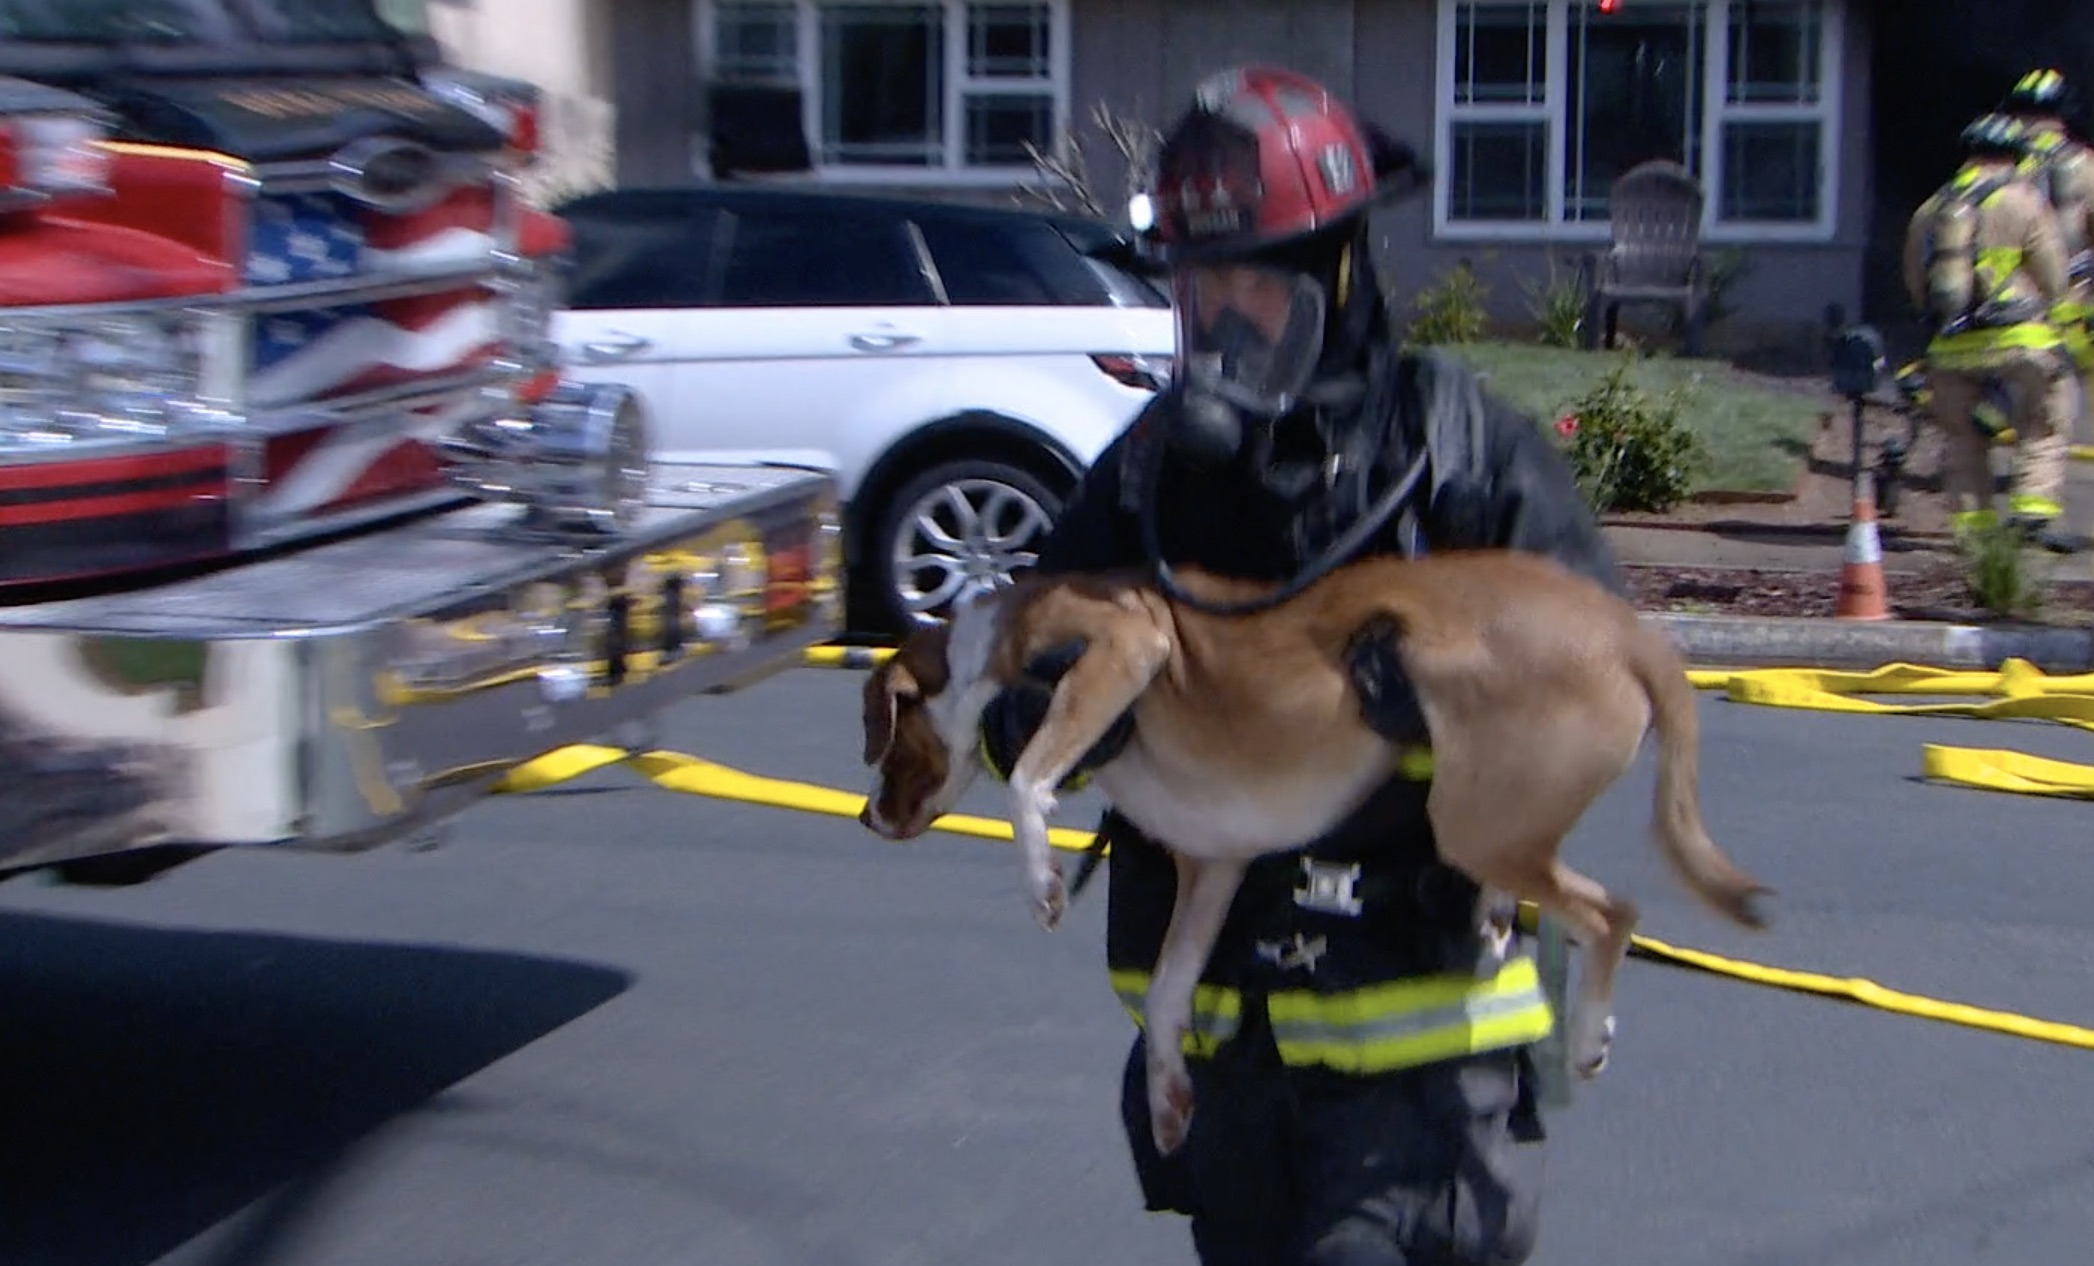 Firefighters Pull Dogs From Burning Carlsbad Home, Lifesaving